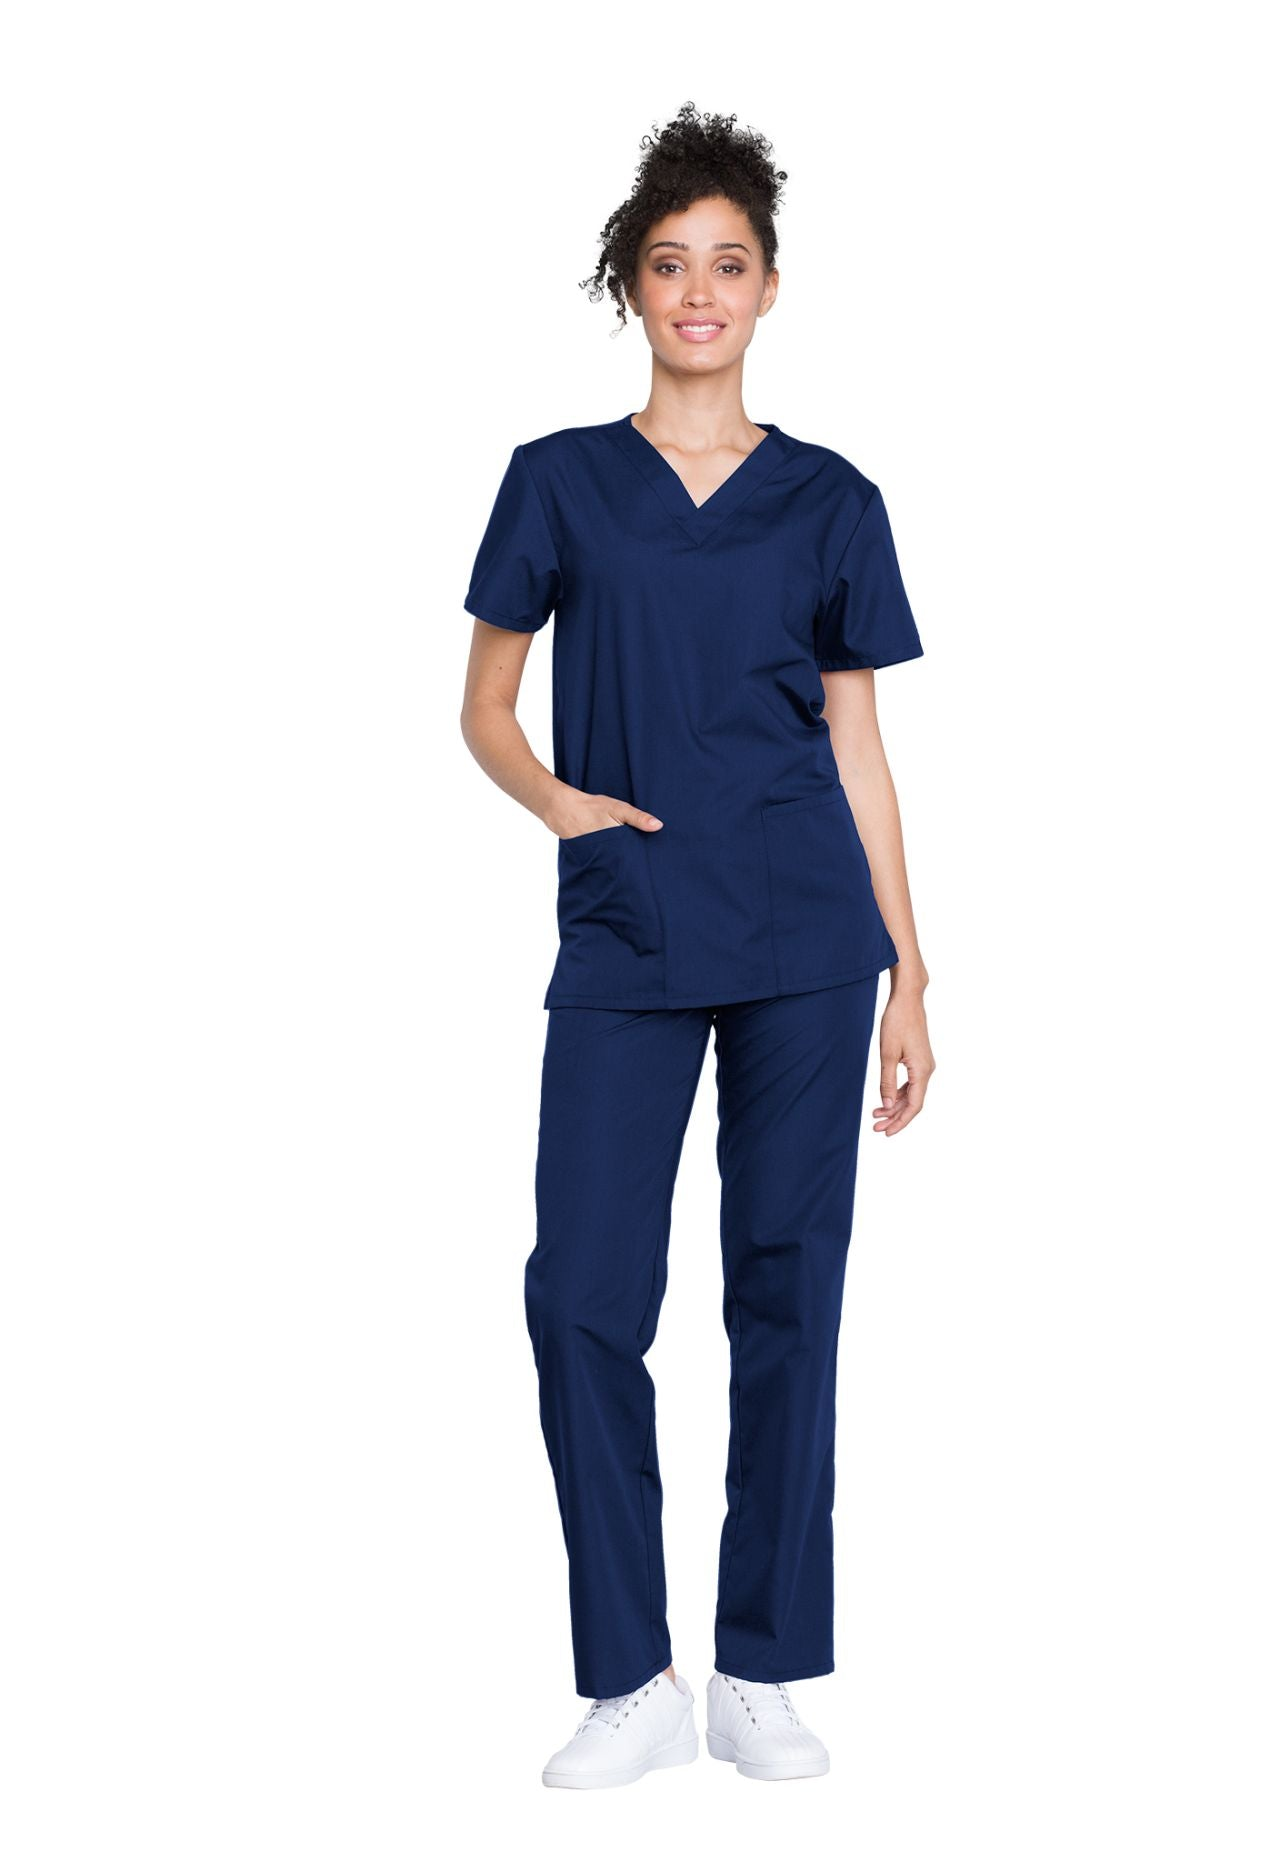 Navy - Cherokee Workwear Originals Unisex Top and Pant Set